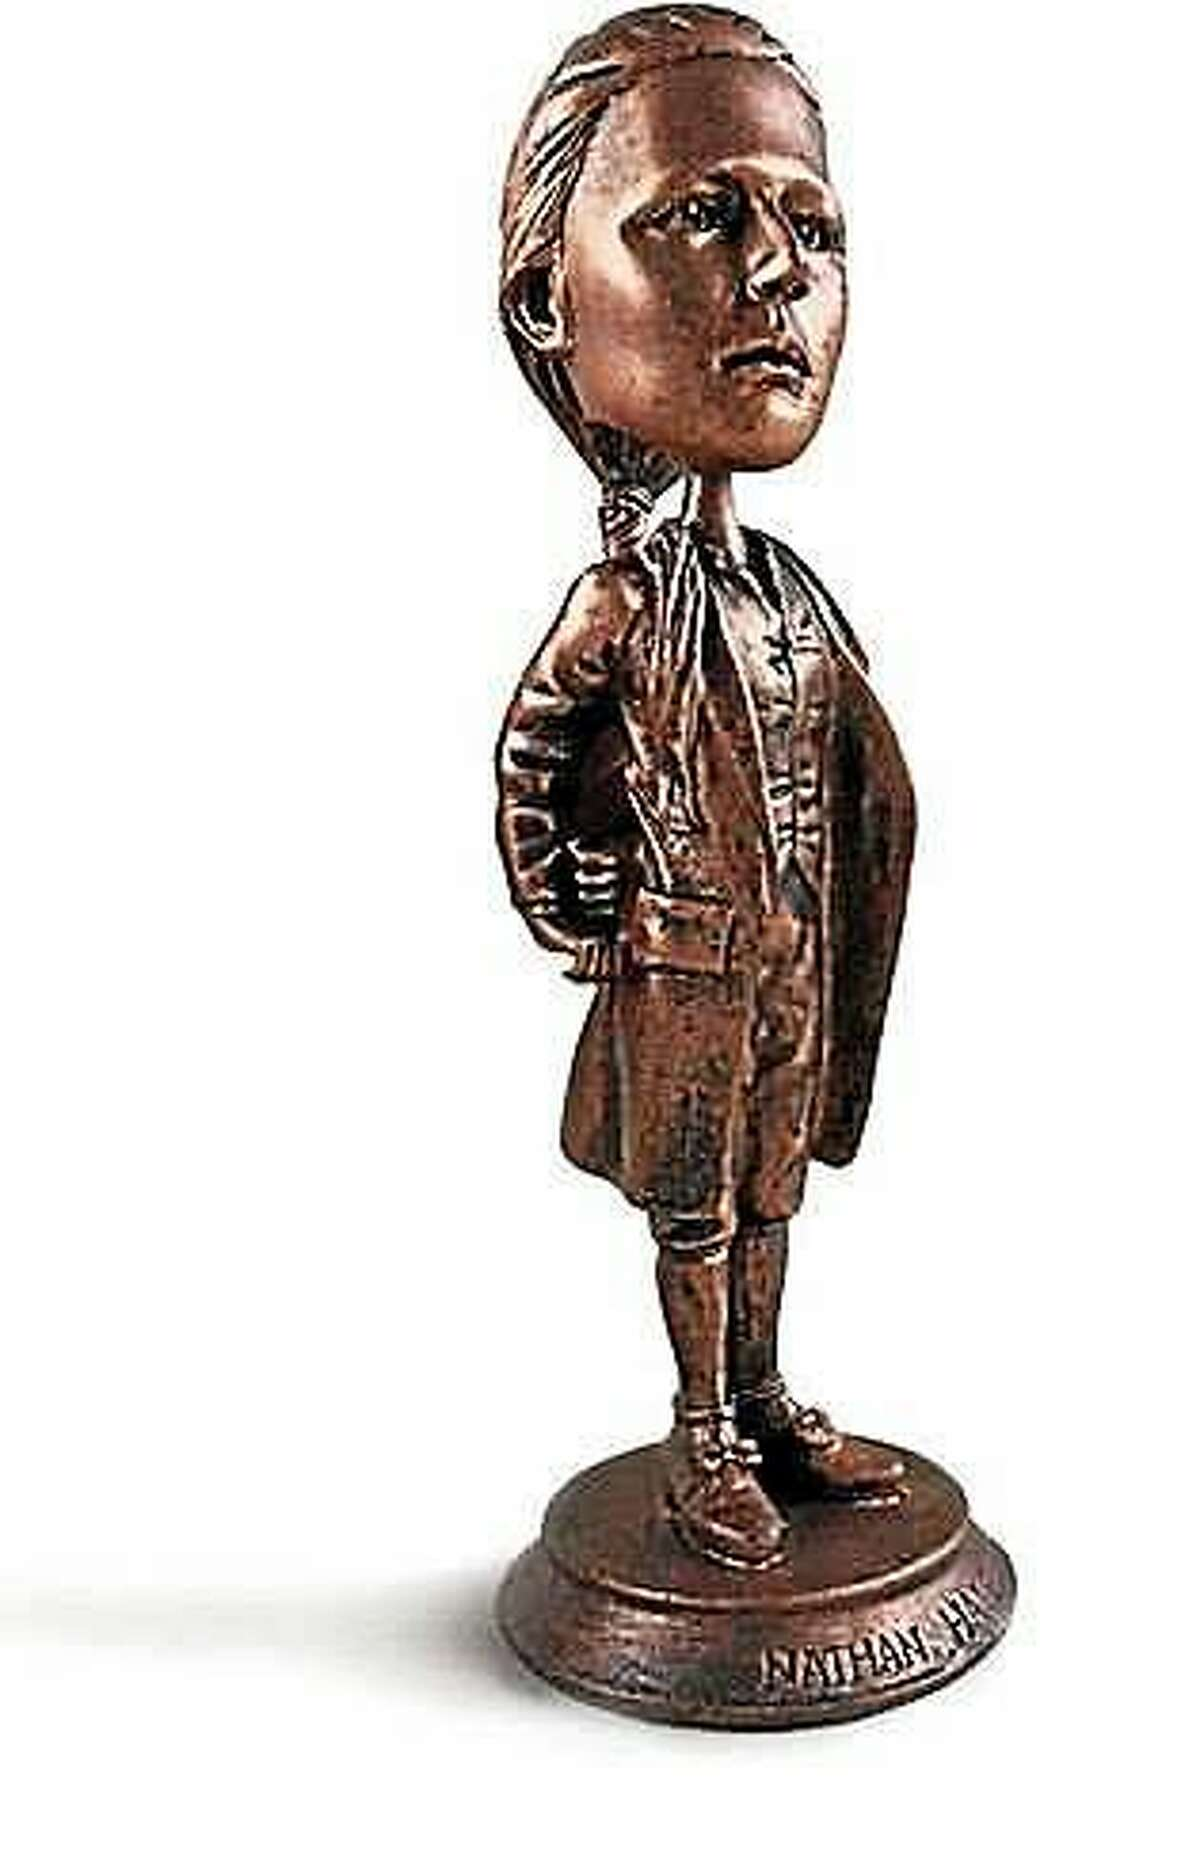 The Nathan Hale bobble-head, a souvenir of the Yale class of 1975's 40th reunion.